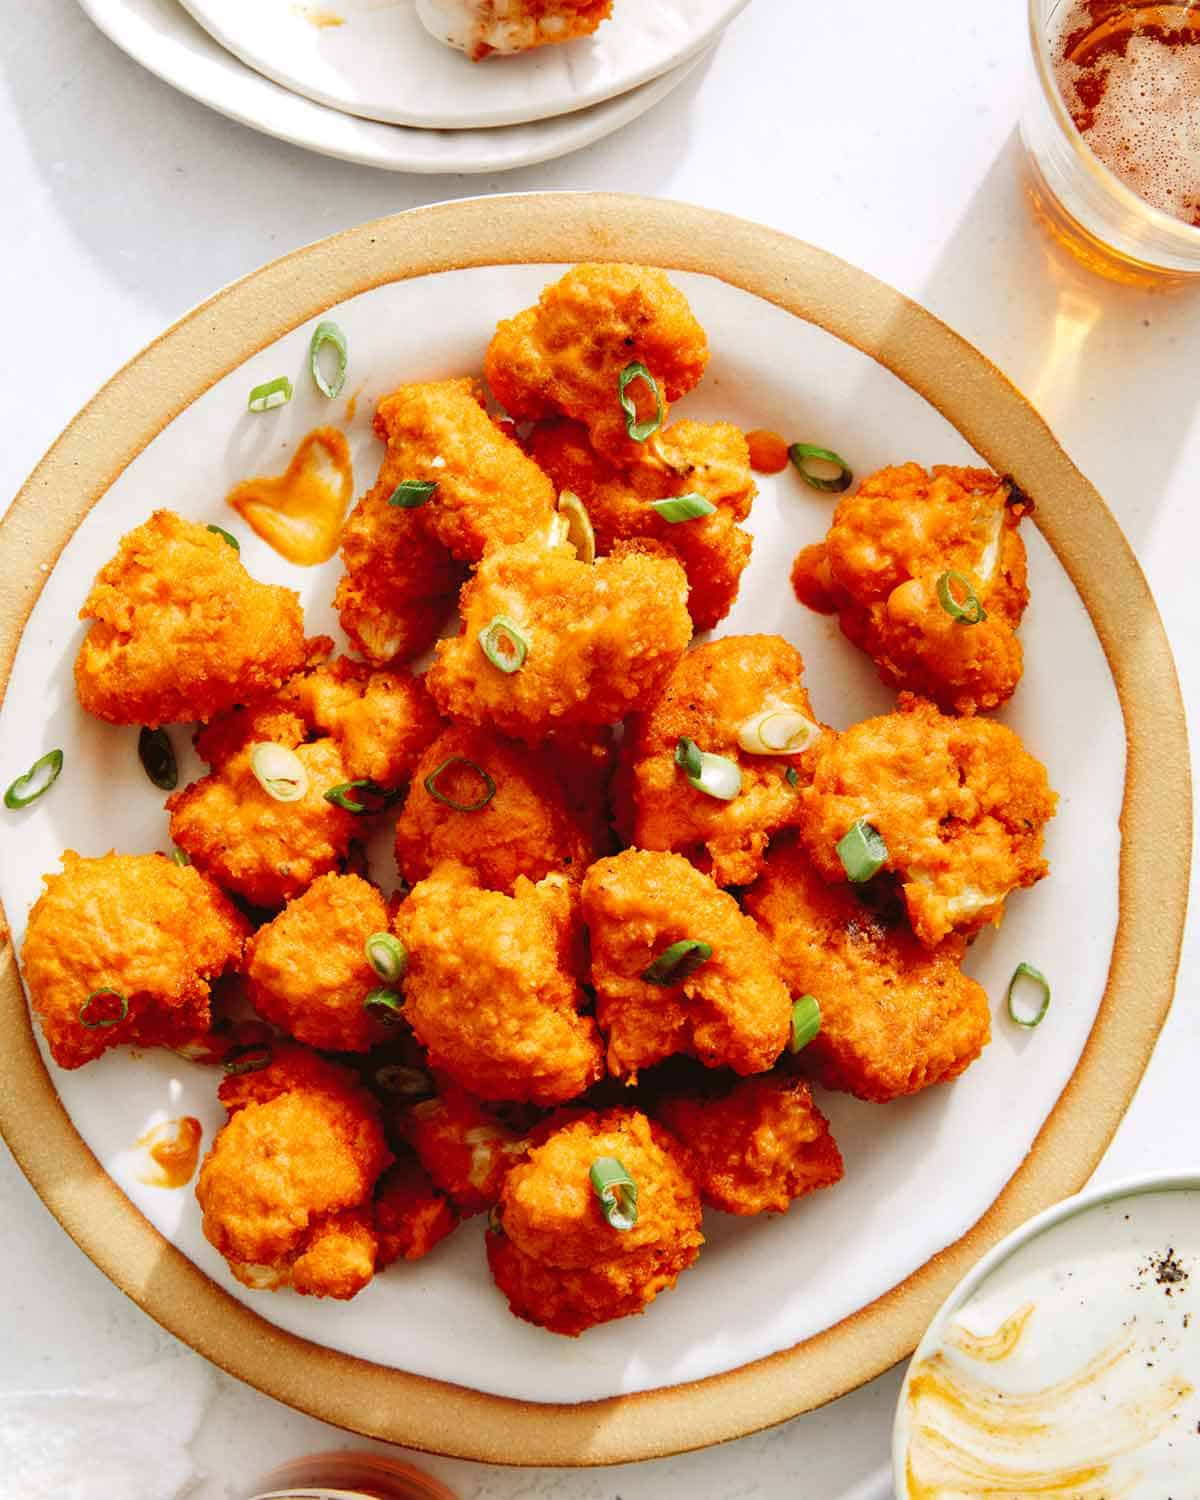 Buffalo cauliflower on a plate with green onions and beer on the side.